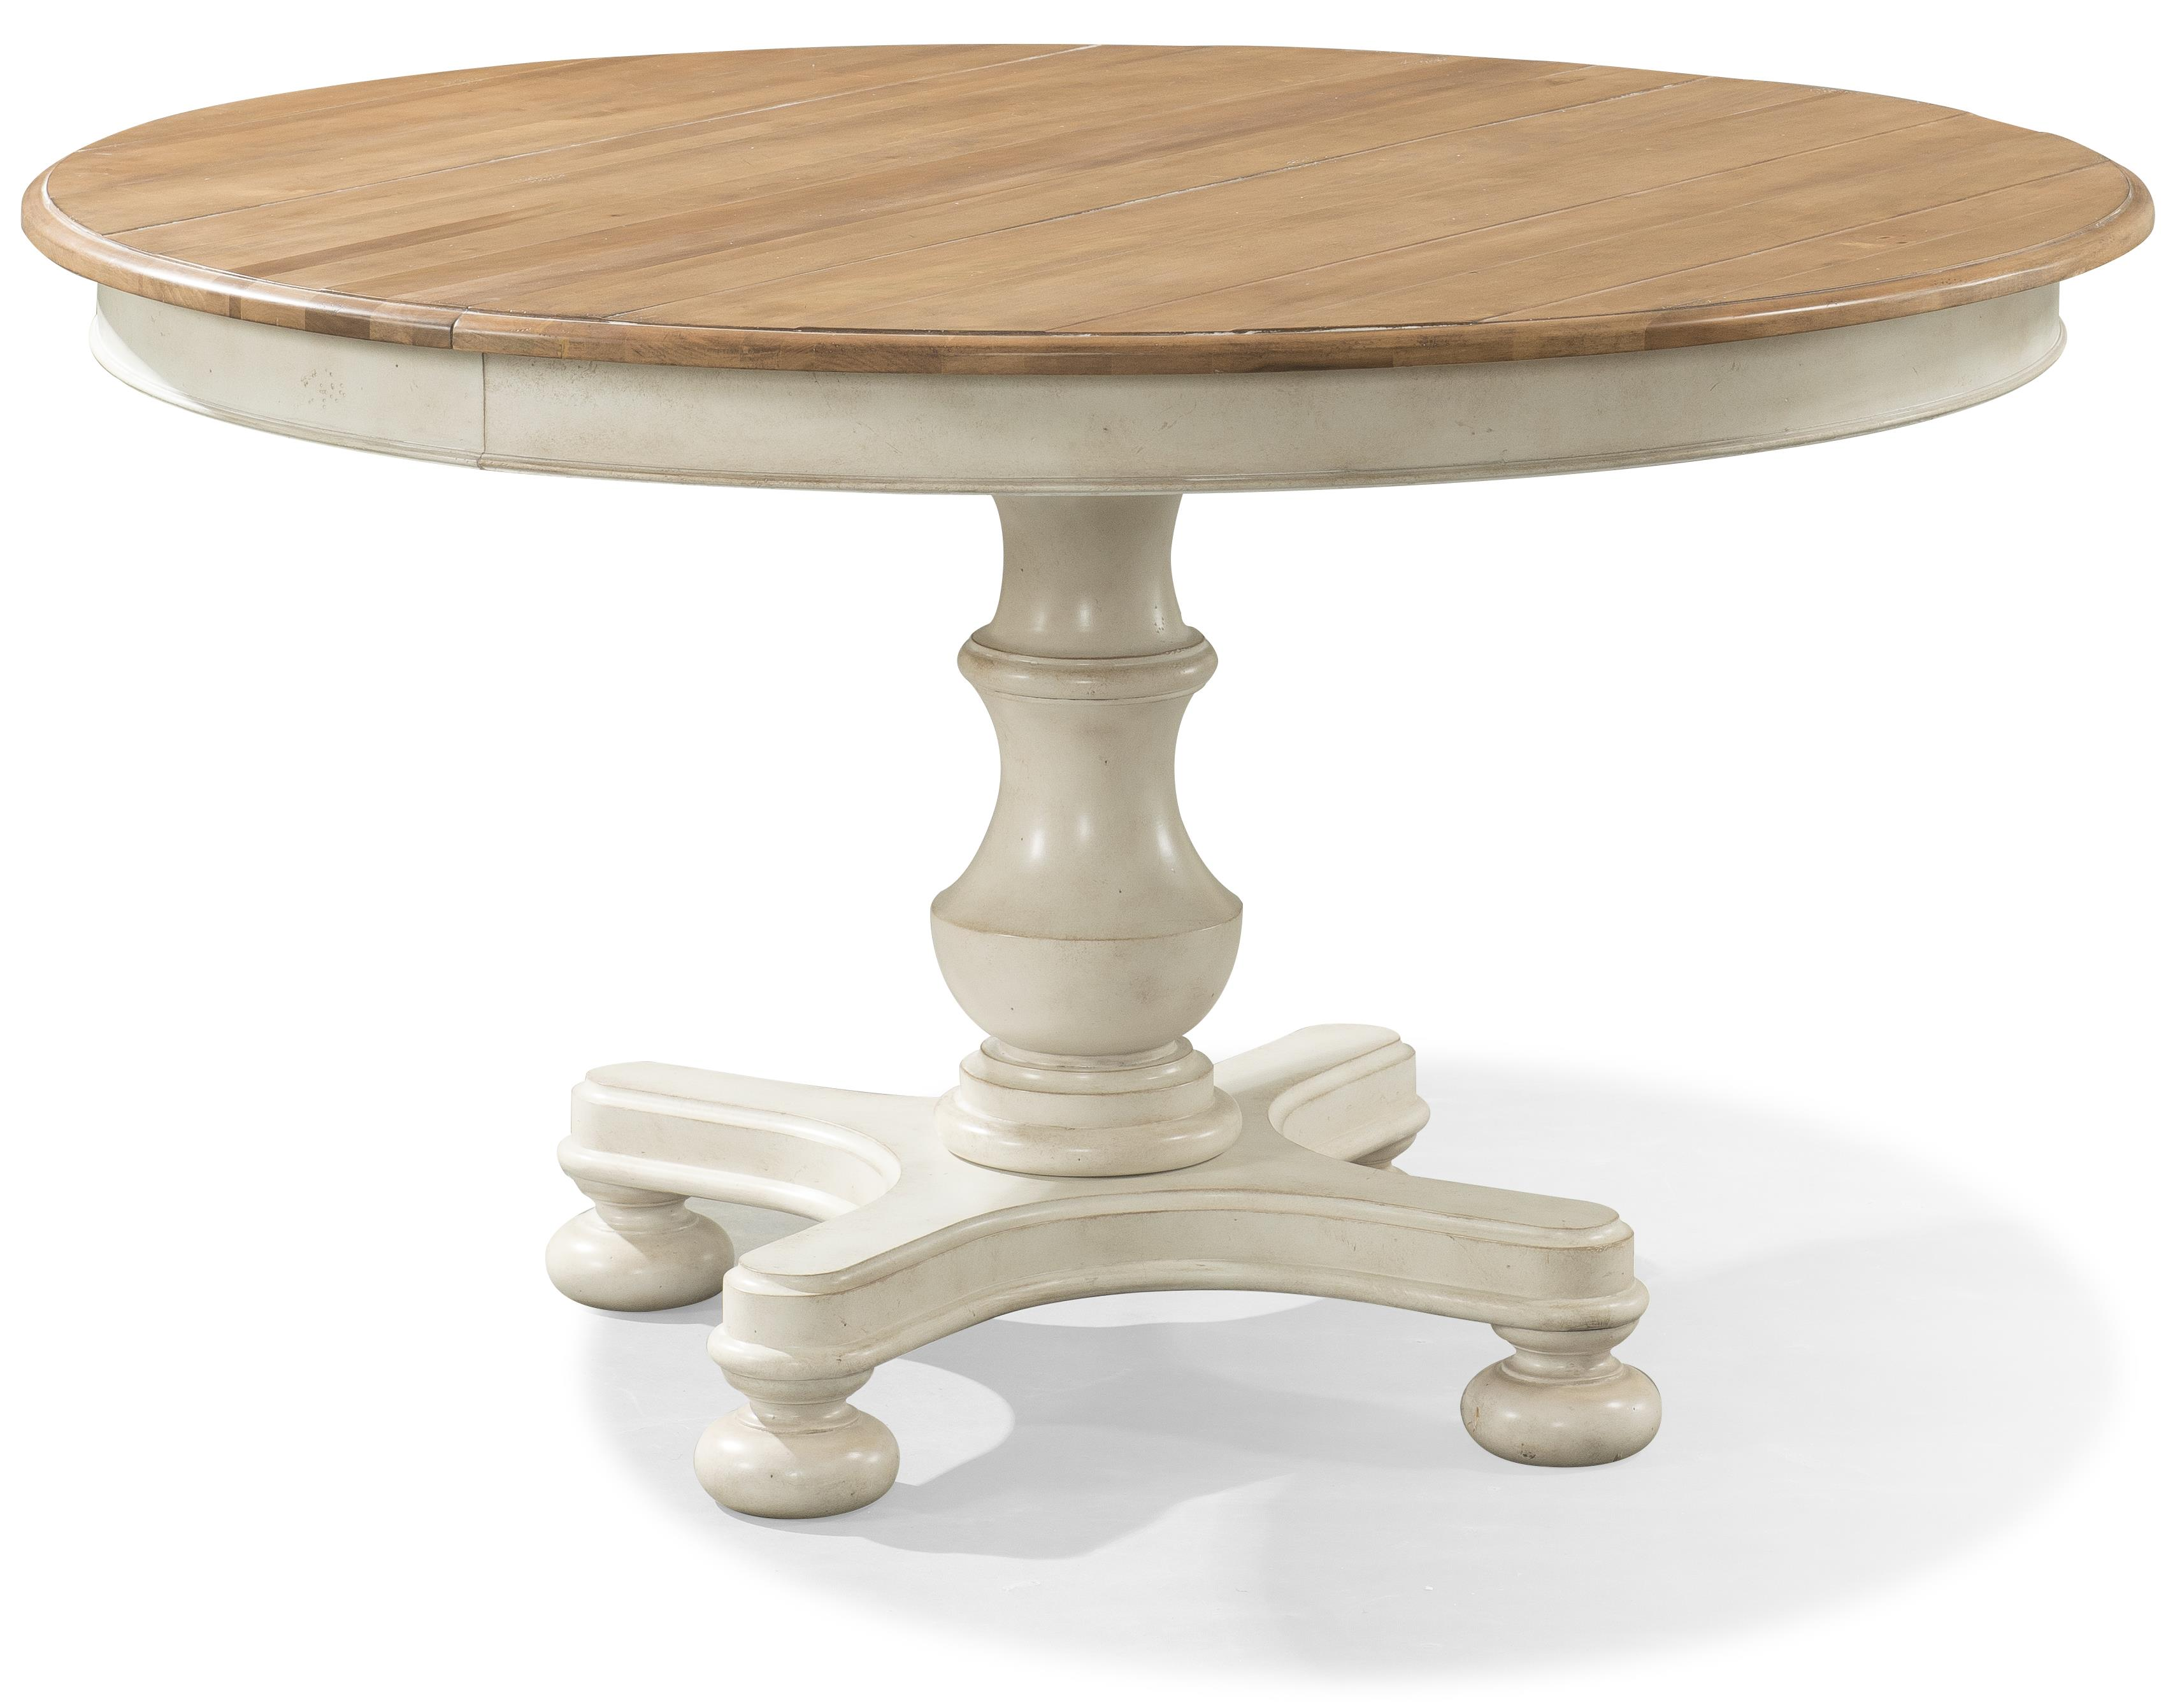 Cresent Fine Furniture Cottage Round Table  - Item Number: 201-151+151P